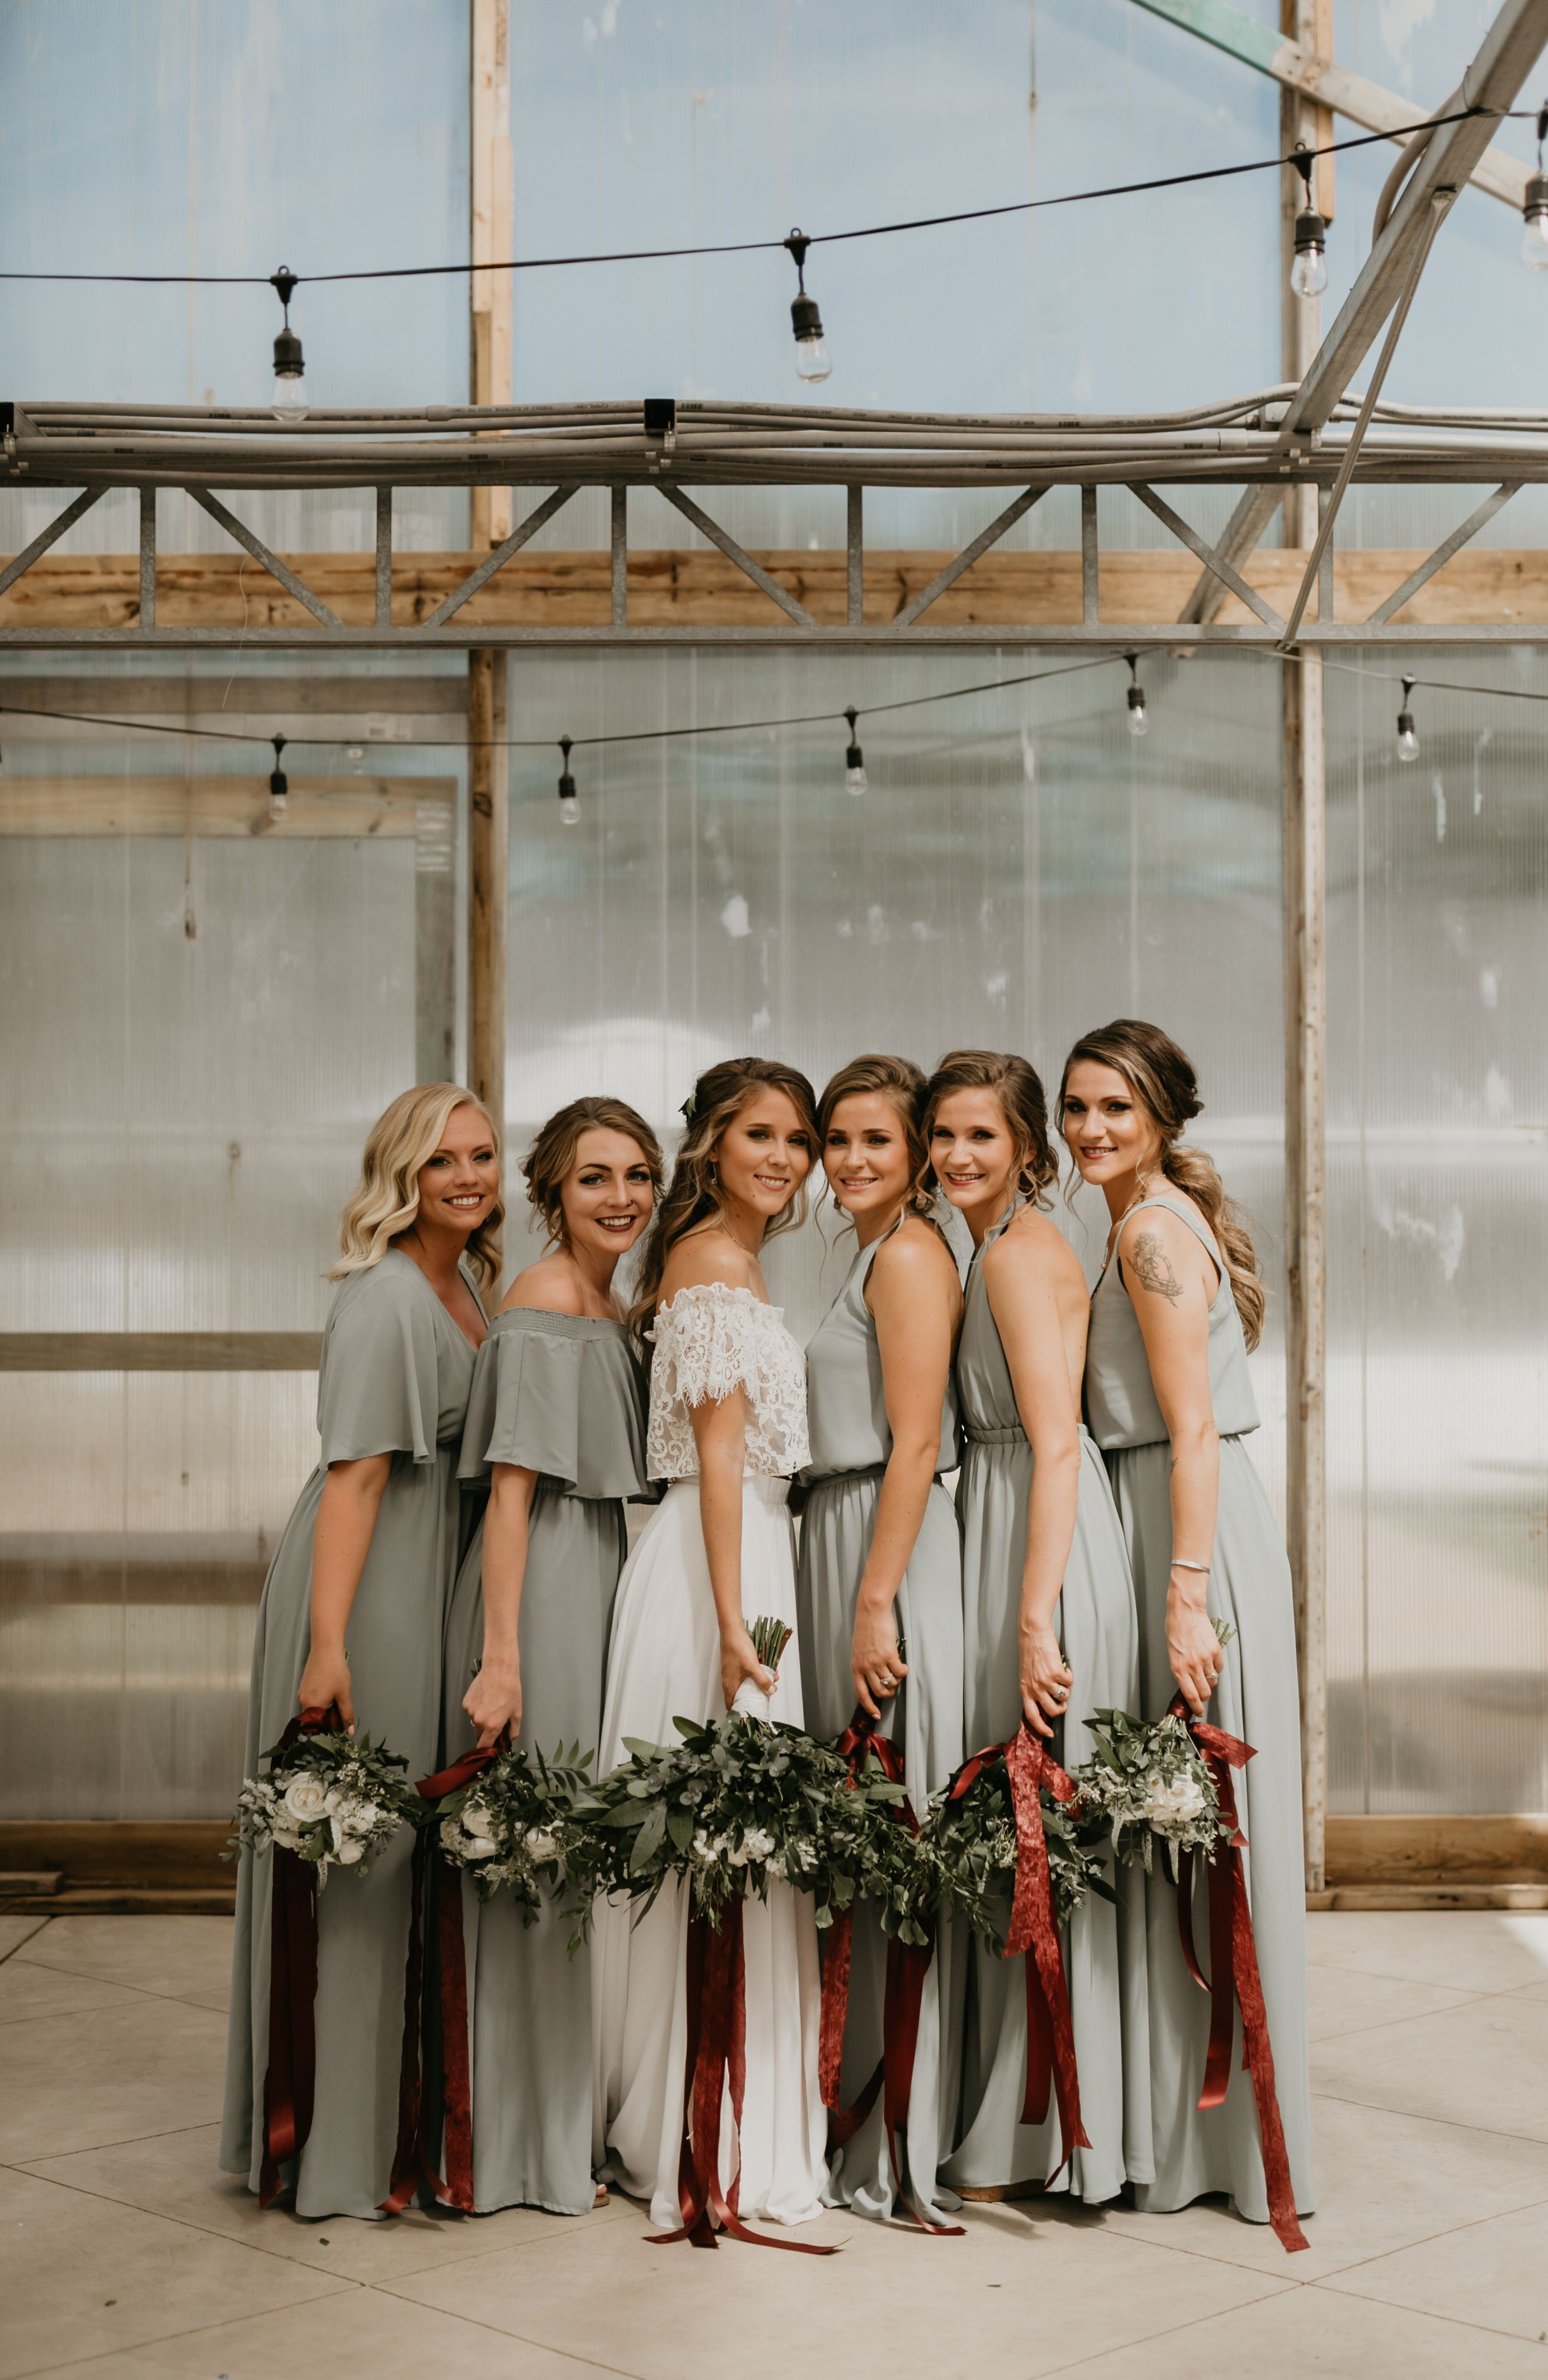 sage bridesmaid dresses with maroon accents